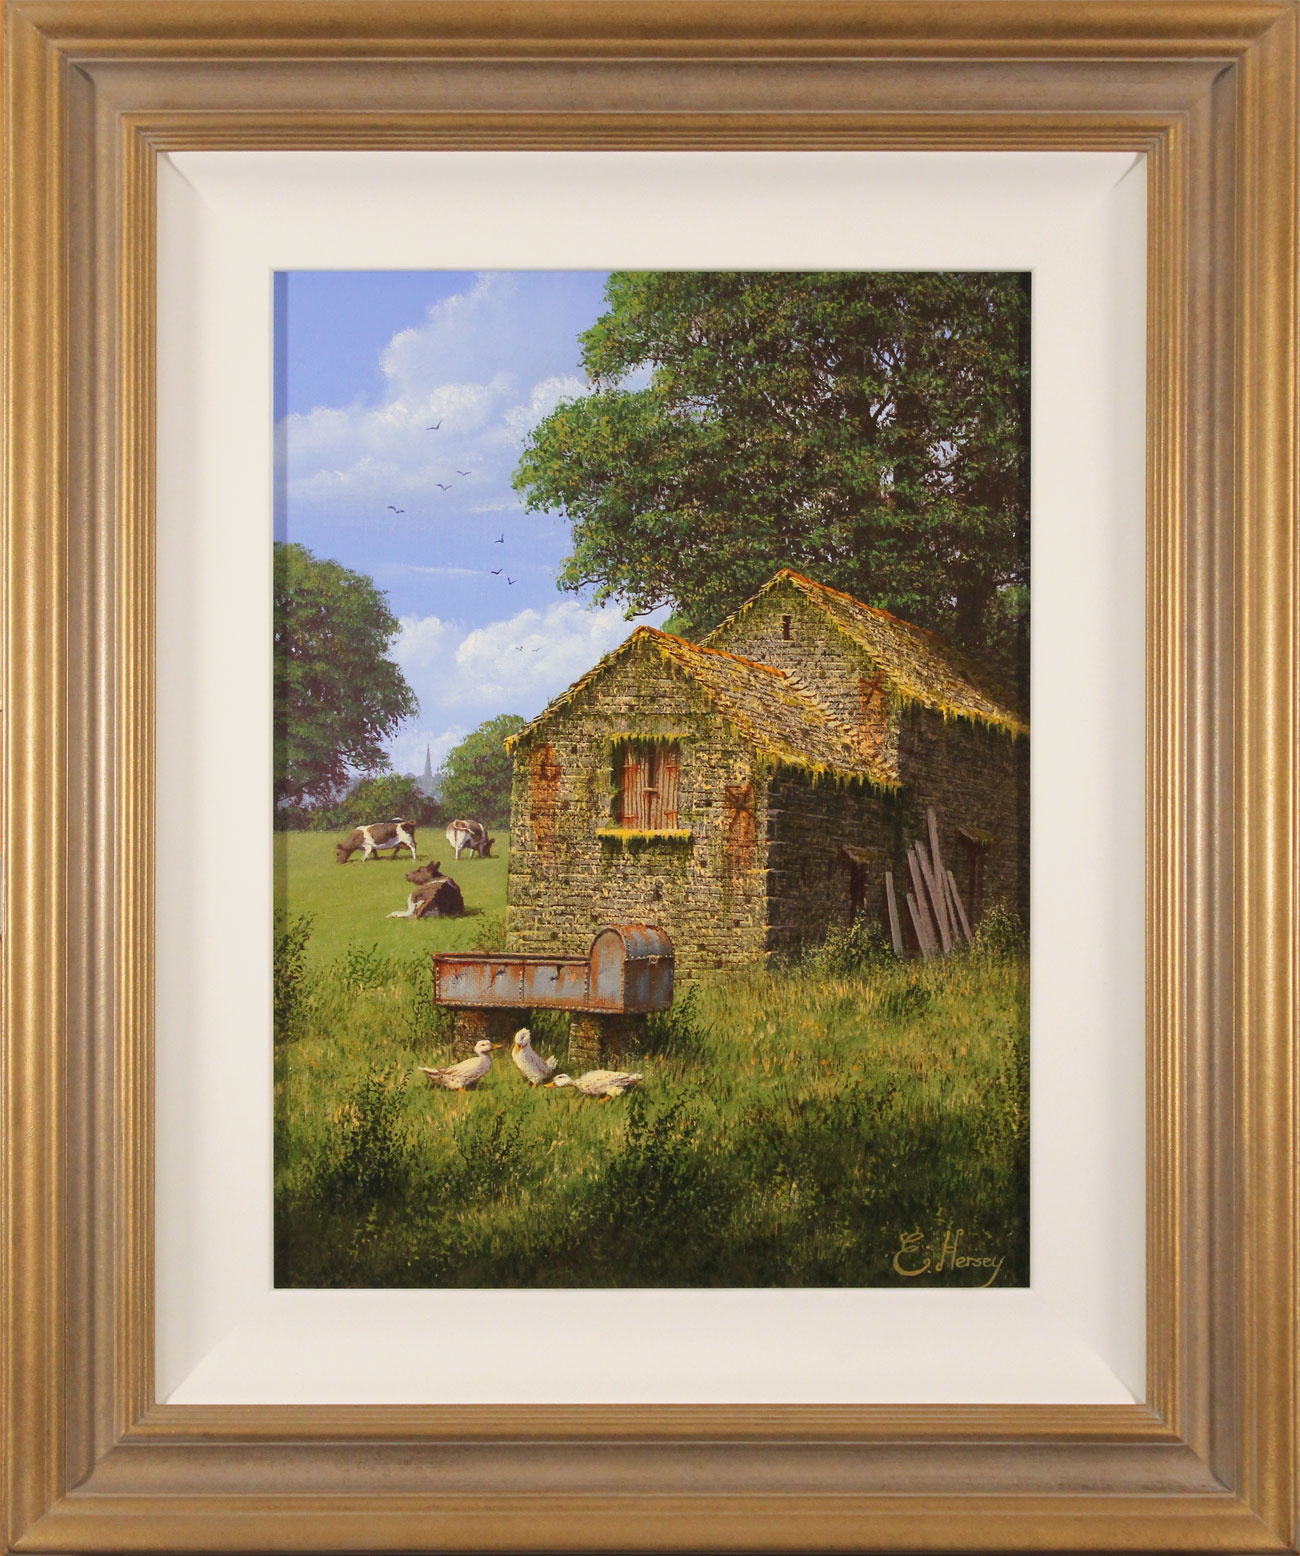 Edward Hersey, Original oil painting on canvas, Moment of Calm Click to enlarge